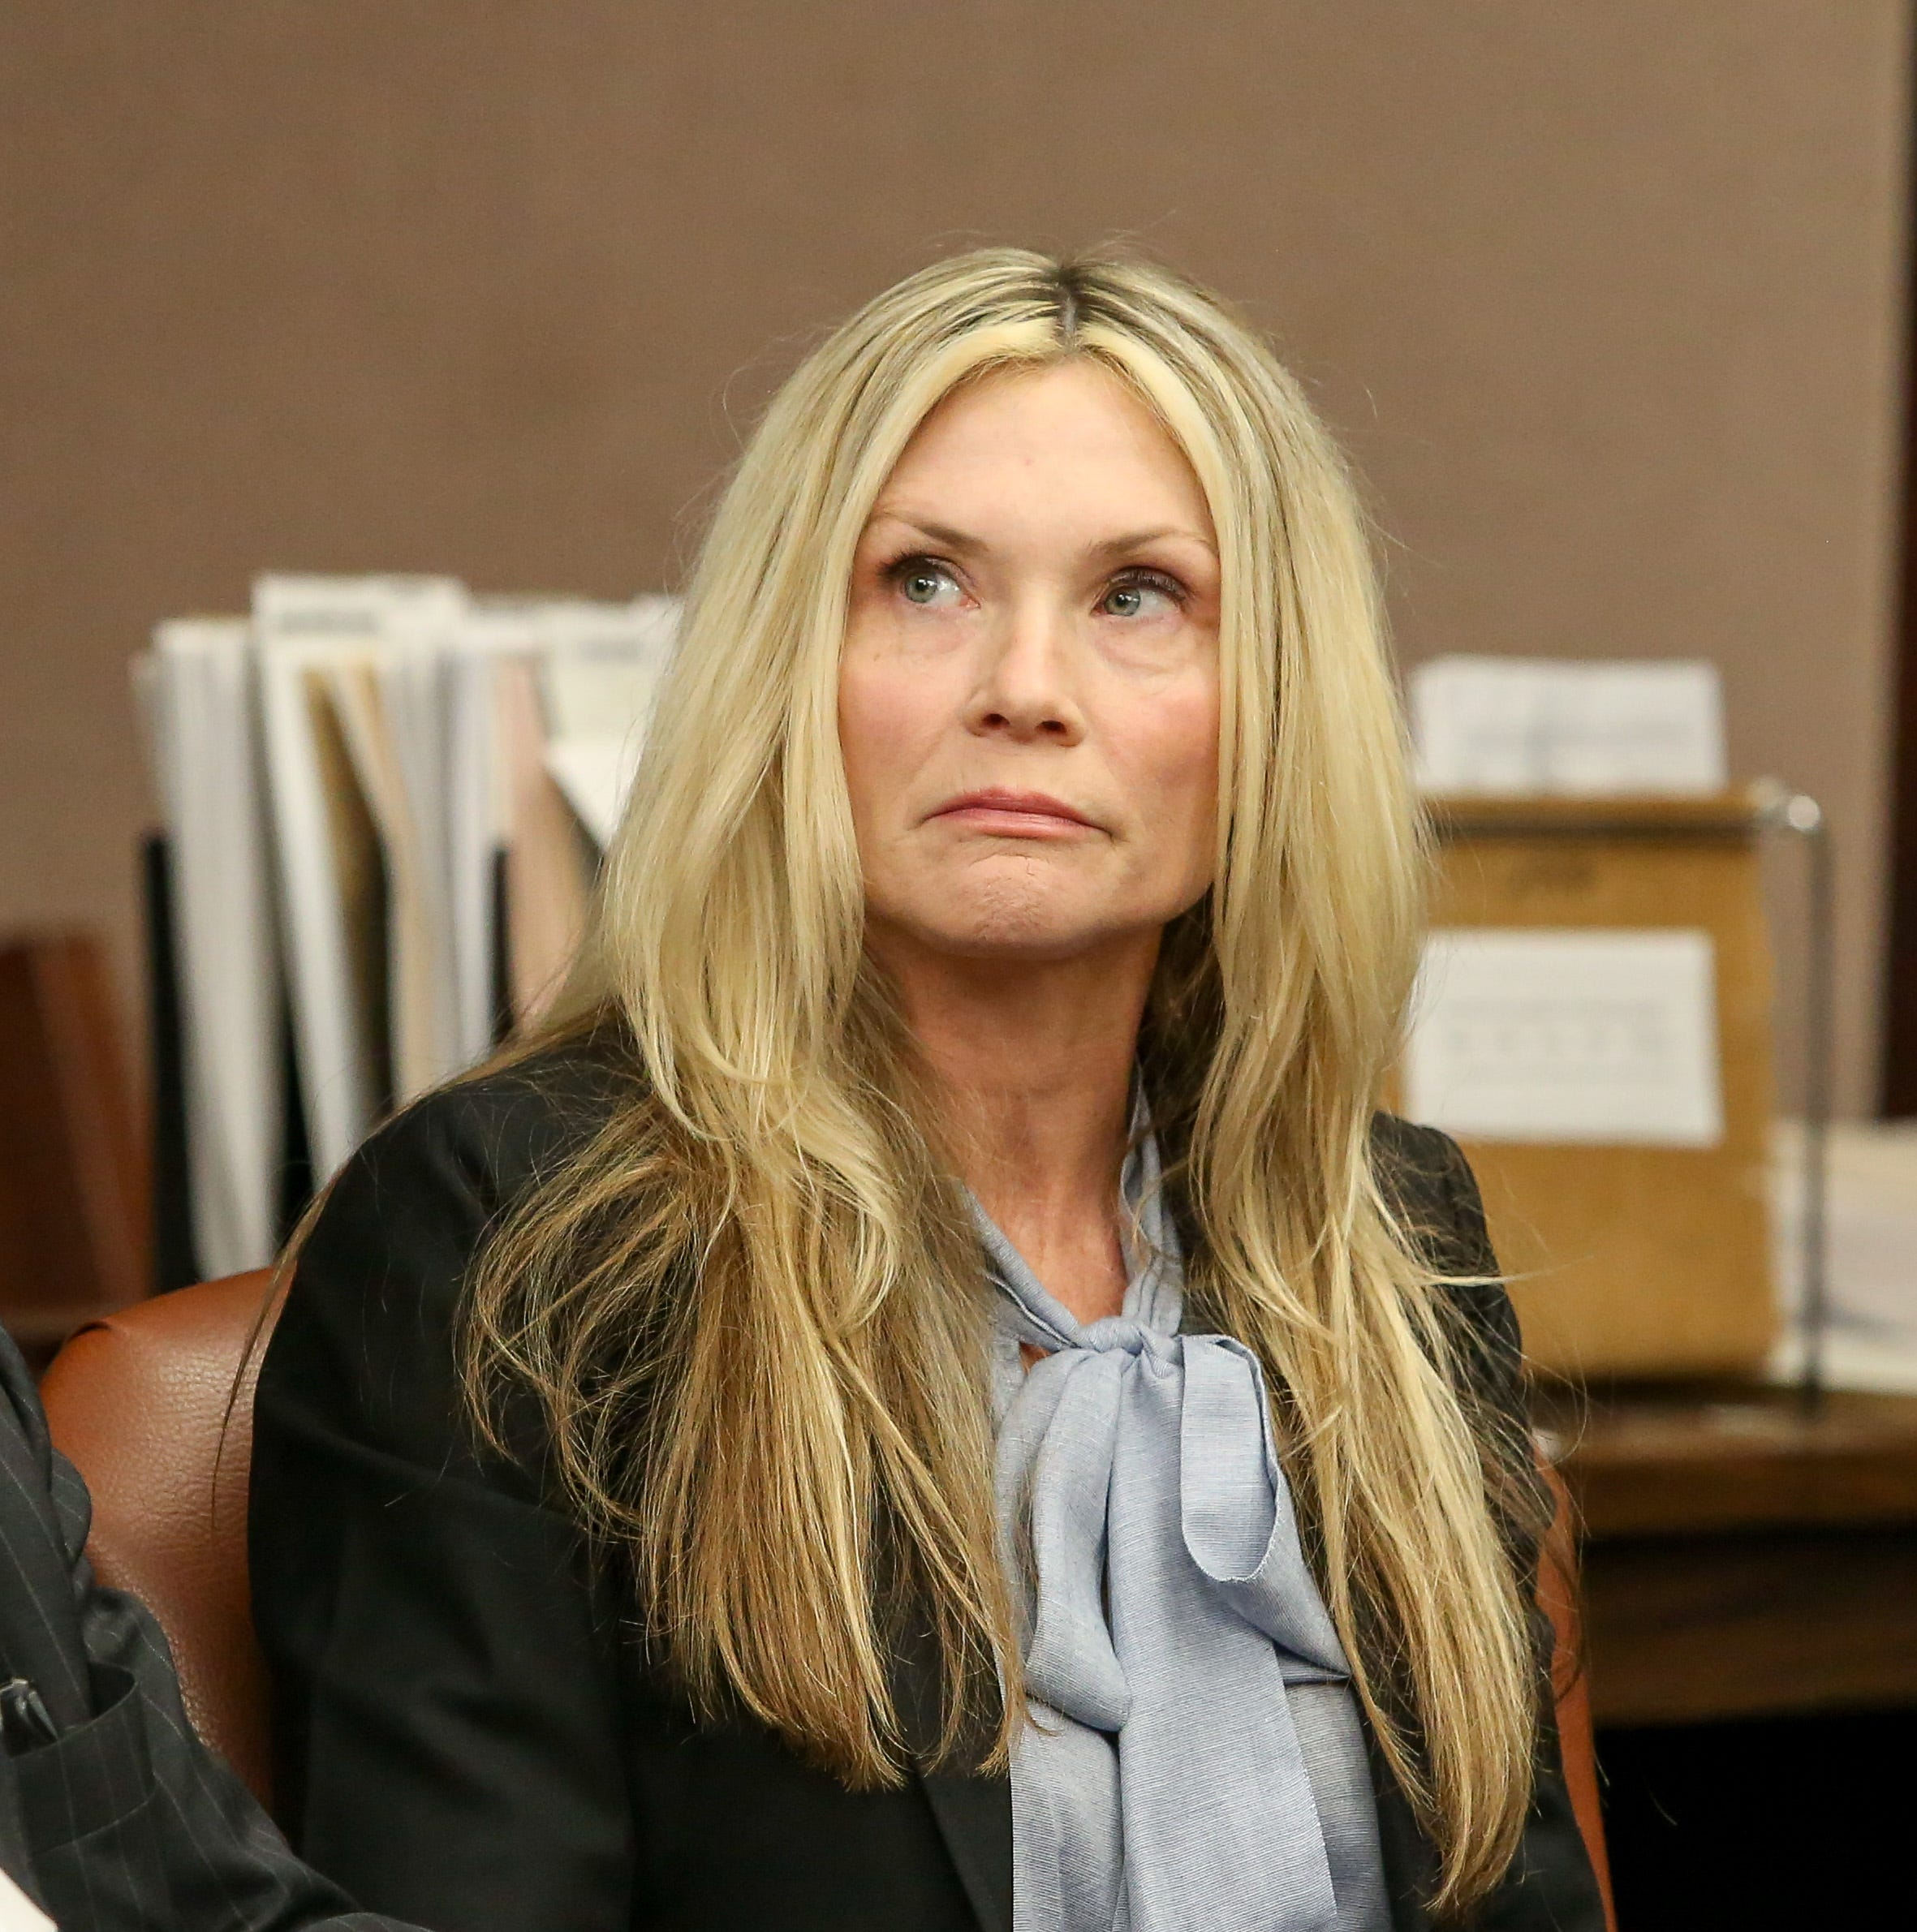 Amy Locane: 'Melrose Place' actress sentenced to 5 years in prison for fatal Somerset DWI accident